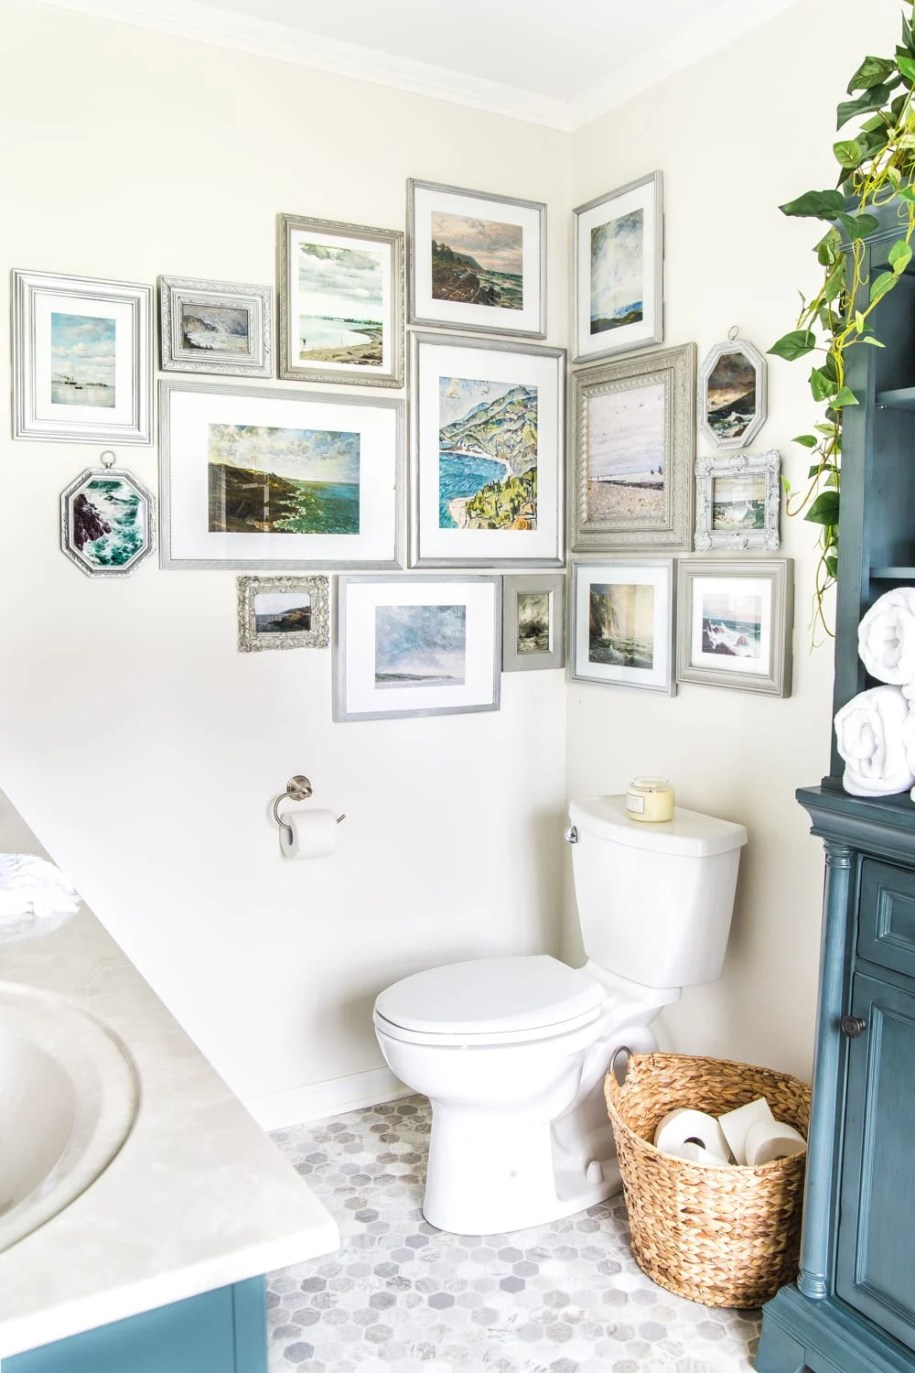 A corner wall art display as bathroom decor